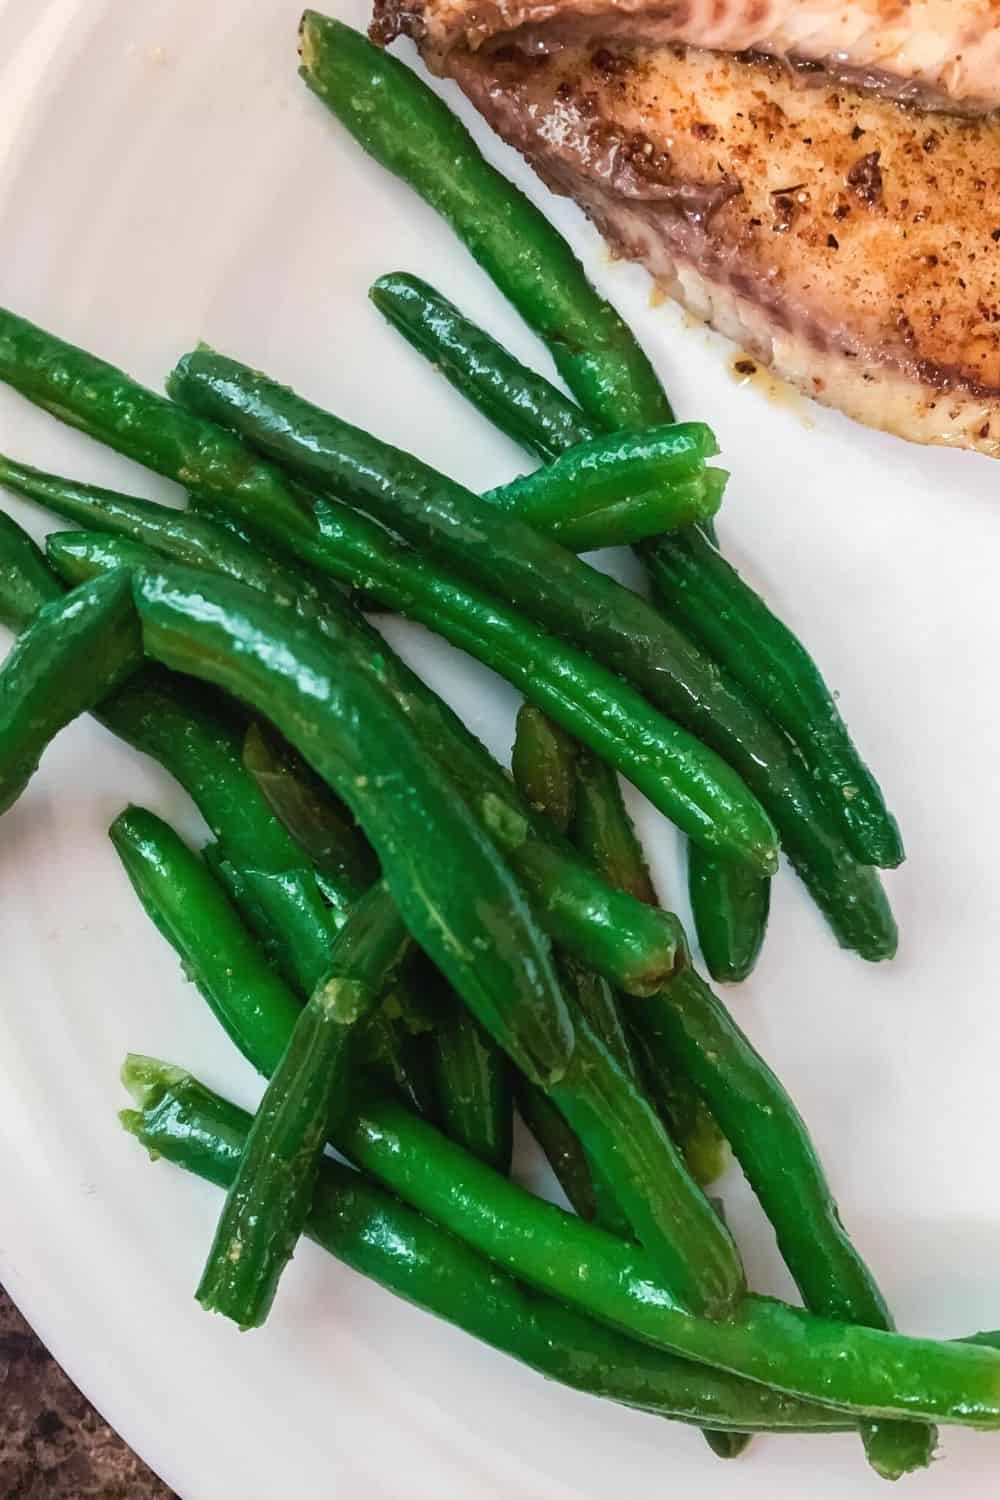 pressure cooker steamed green beans on a white plate next to cooked fish